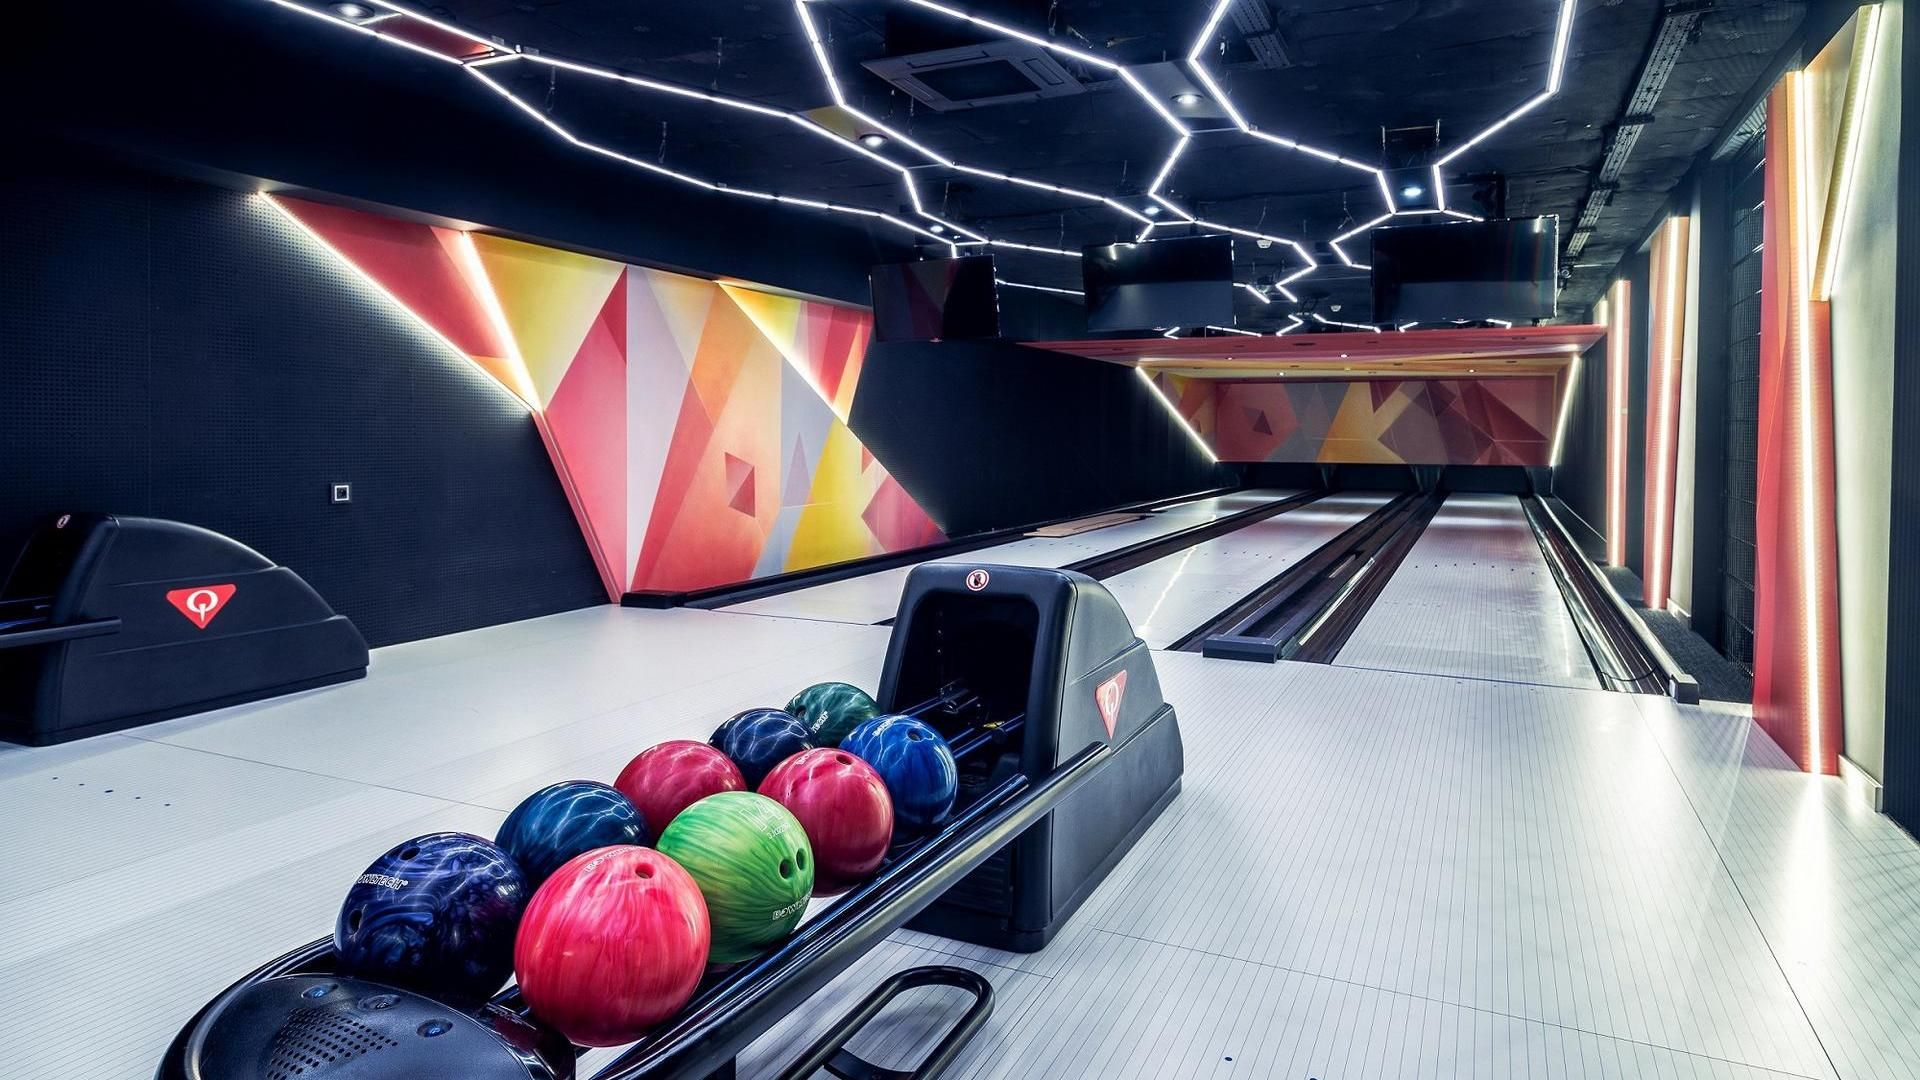 Bowling space